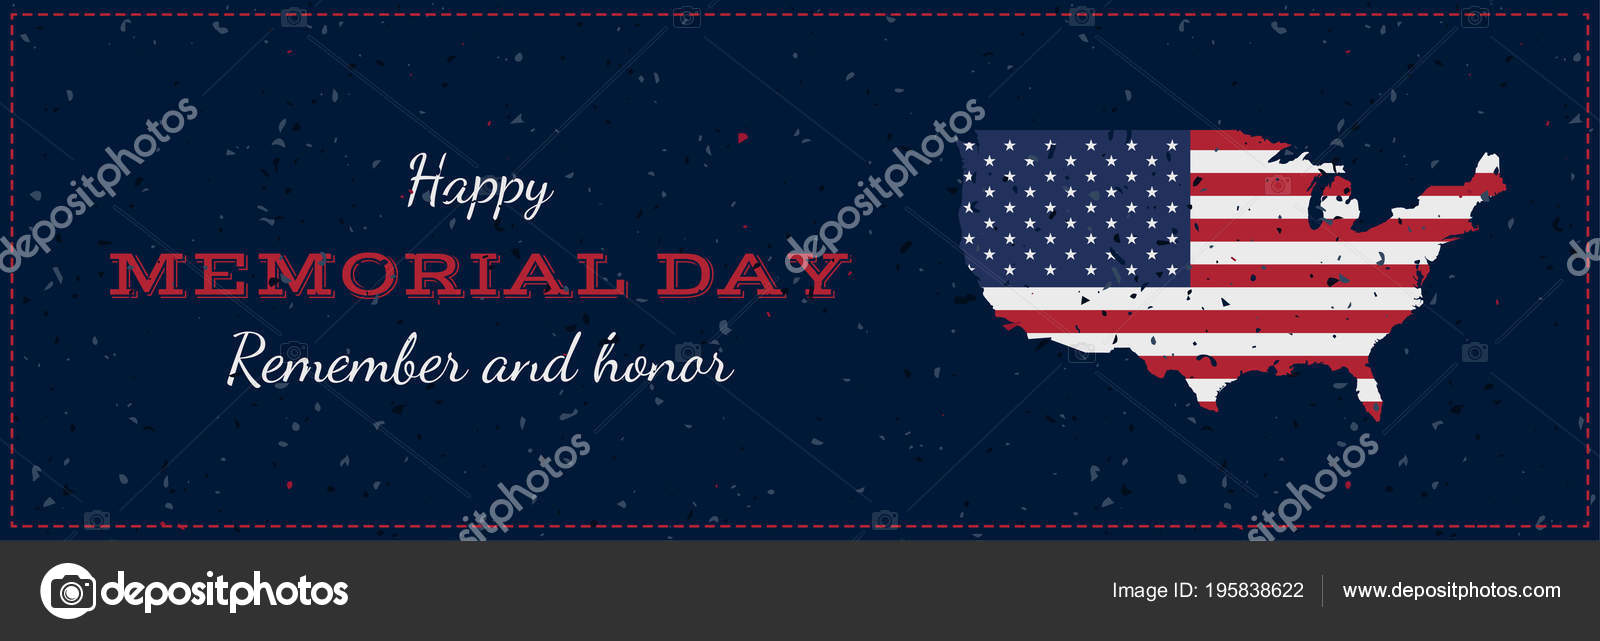 Happy Memorial Day Usa Map Vintage Retro Greeting Card Flag ... on flat map of united states, printable flat map, flat map pennsylvania, world map, sua flat map, america flat map, chantry flats map, flat globe, flat map of countries, flat map of asia, future of the united states map, usa map, a flat map, flat global map, 48 united states map, red state blue state map, flat europe map, empty states map, flat continent map, globe flattened to map,